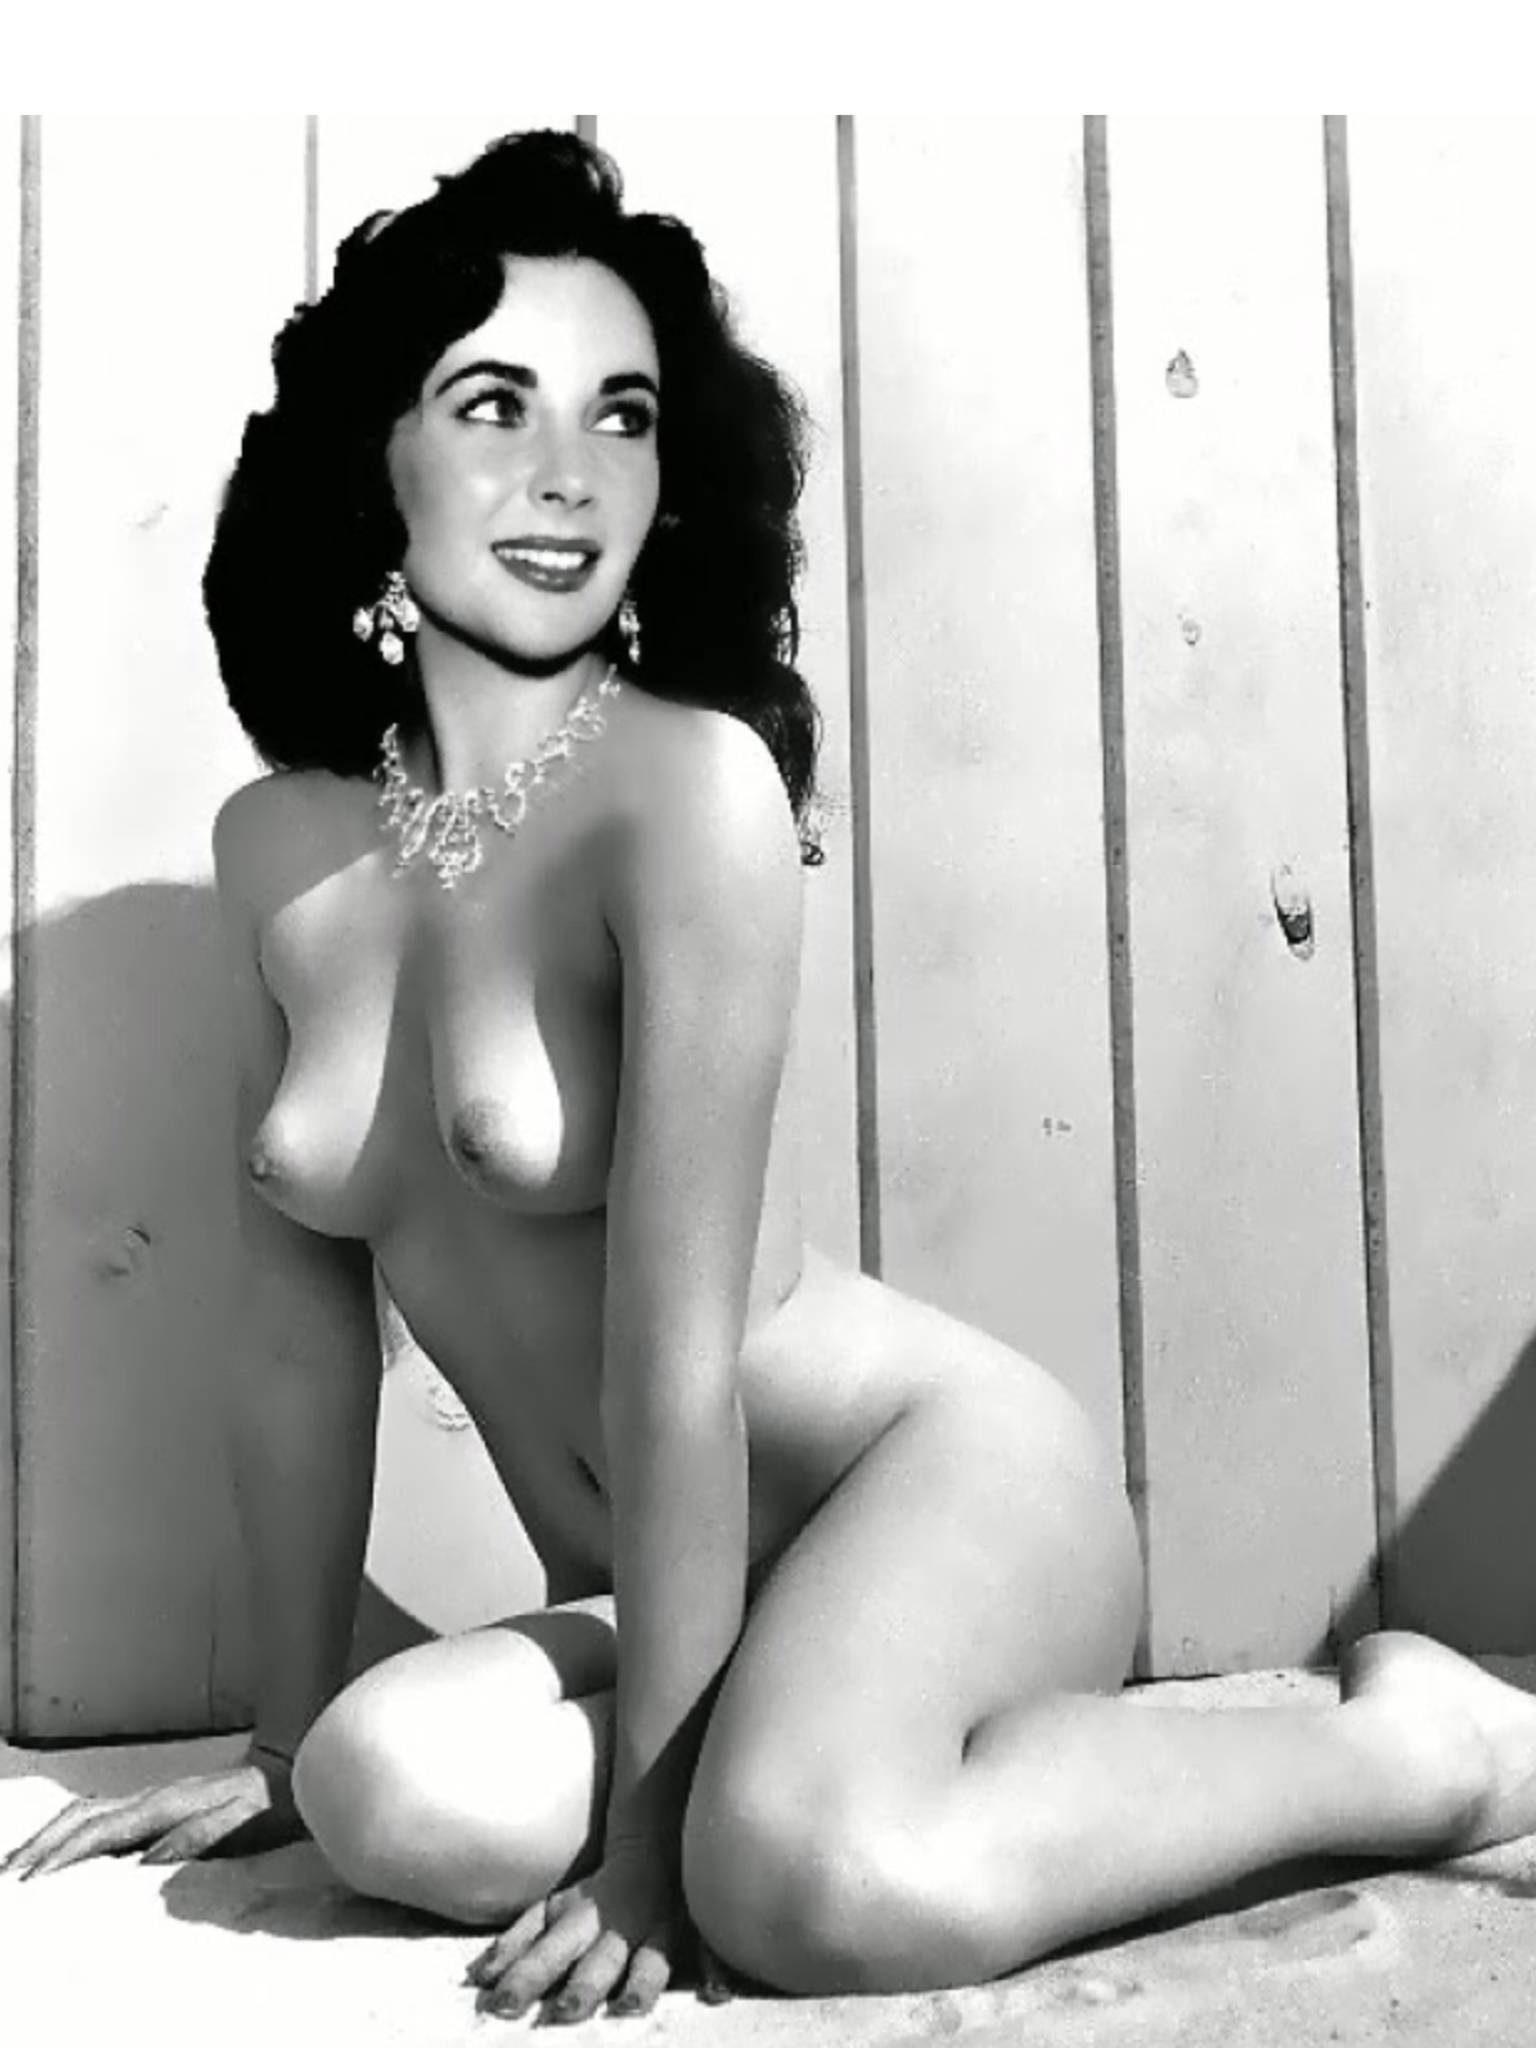 Situation familiar actress elizabeth taylor nude that interrupt